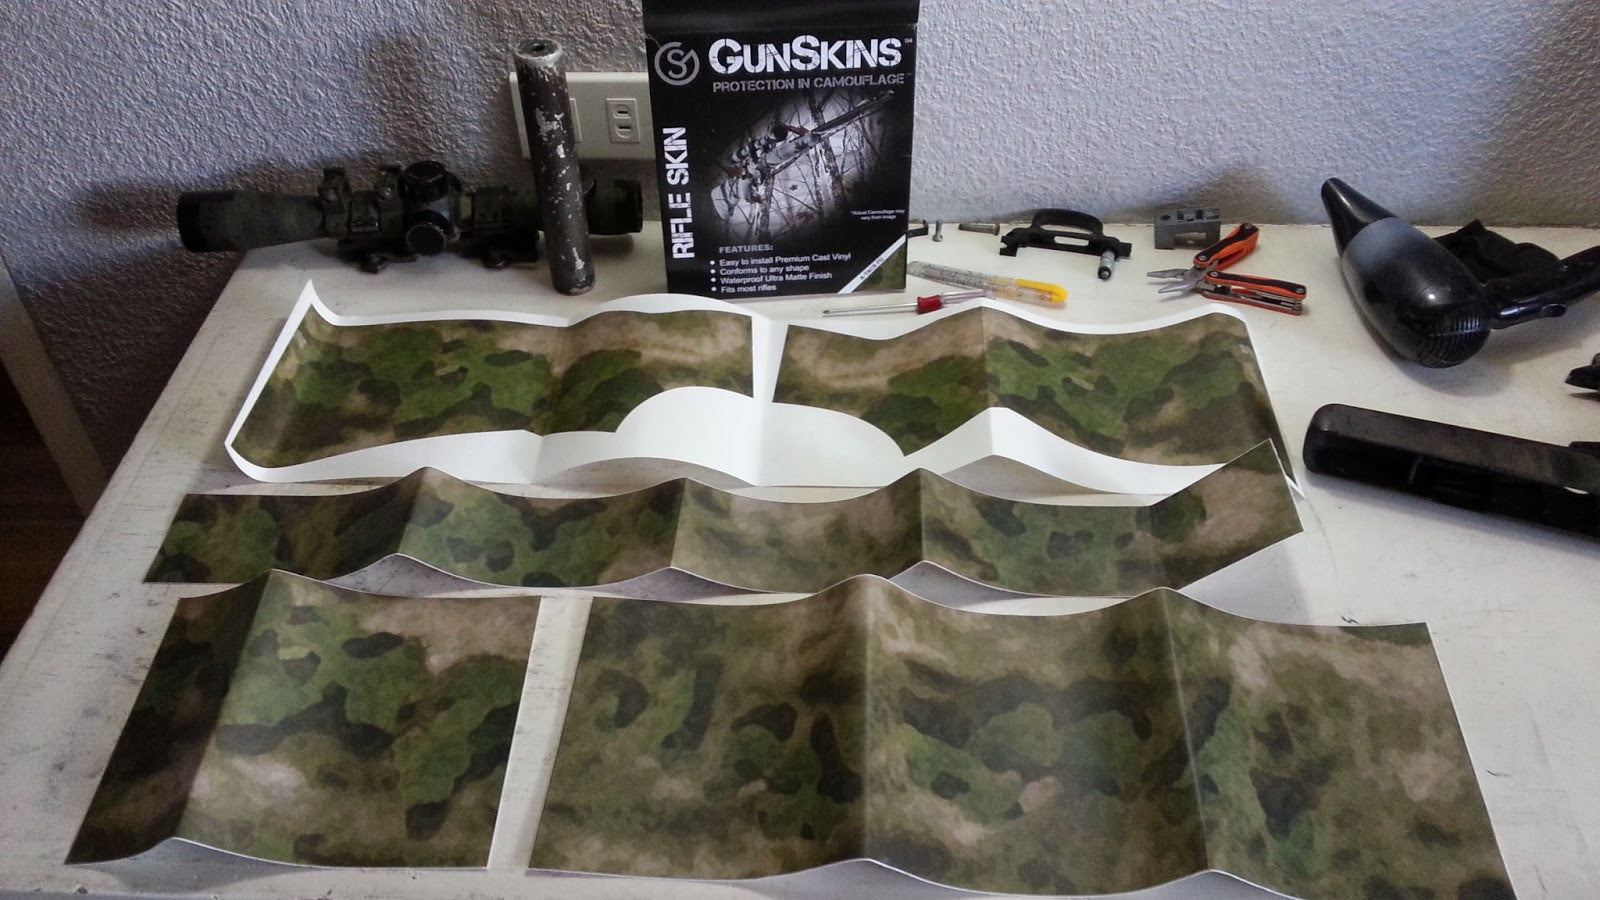 GunSkins DIY Kit